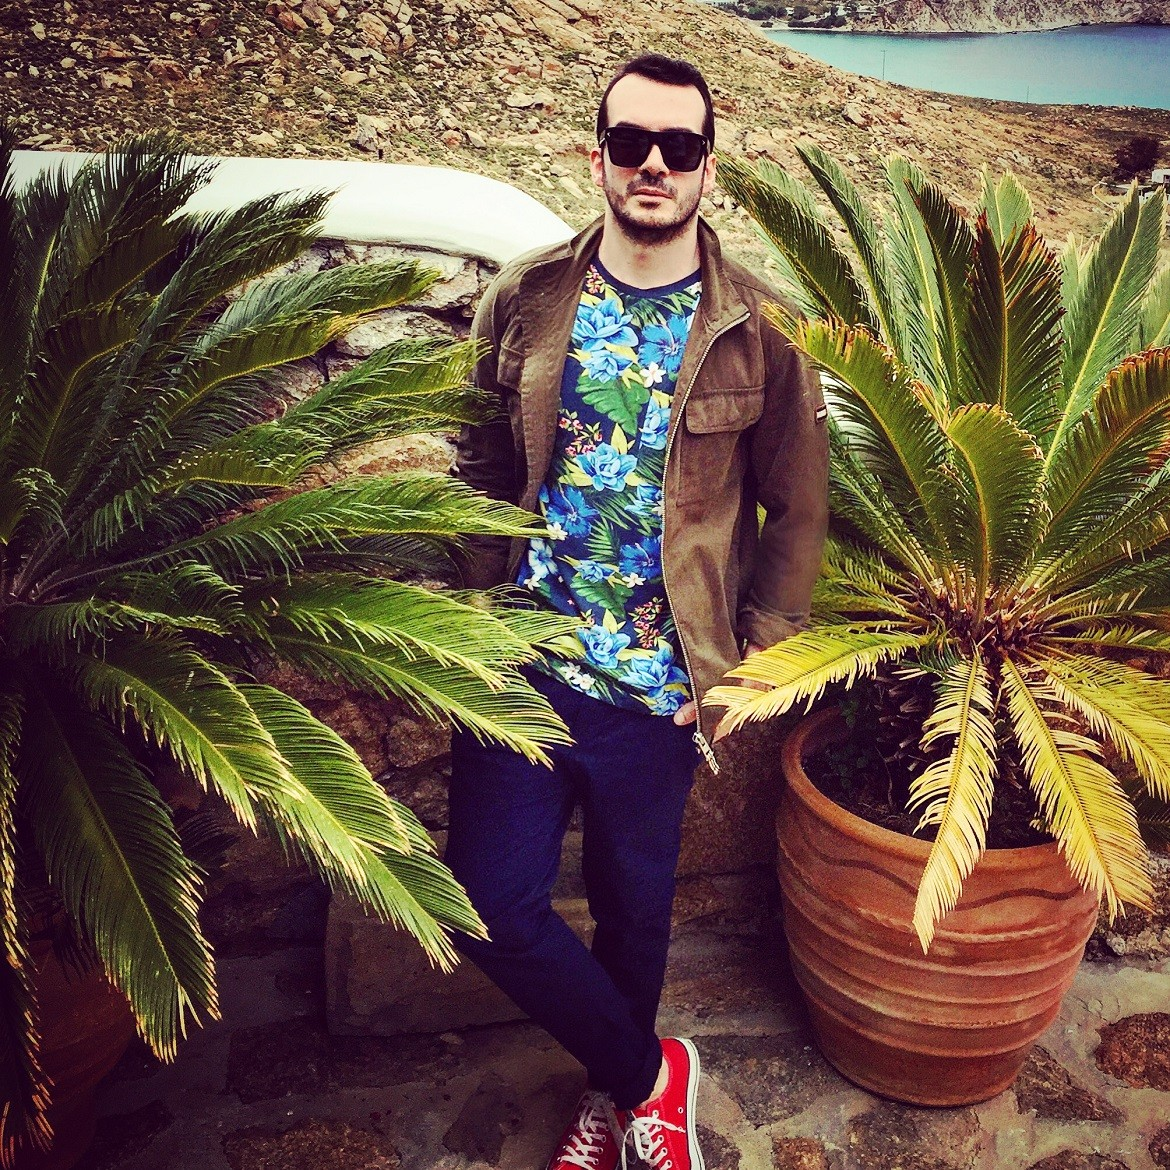 GOING FLORAL IN MYKONOS: Field jacket, t-shirt & chinos by Tommy Hilfiger // Sneakers by Converse All Star // Sunglasses by Givenchy